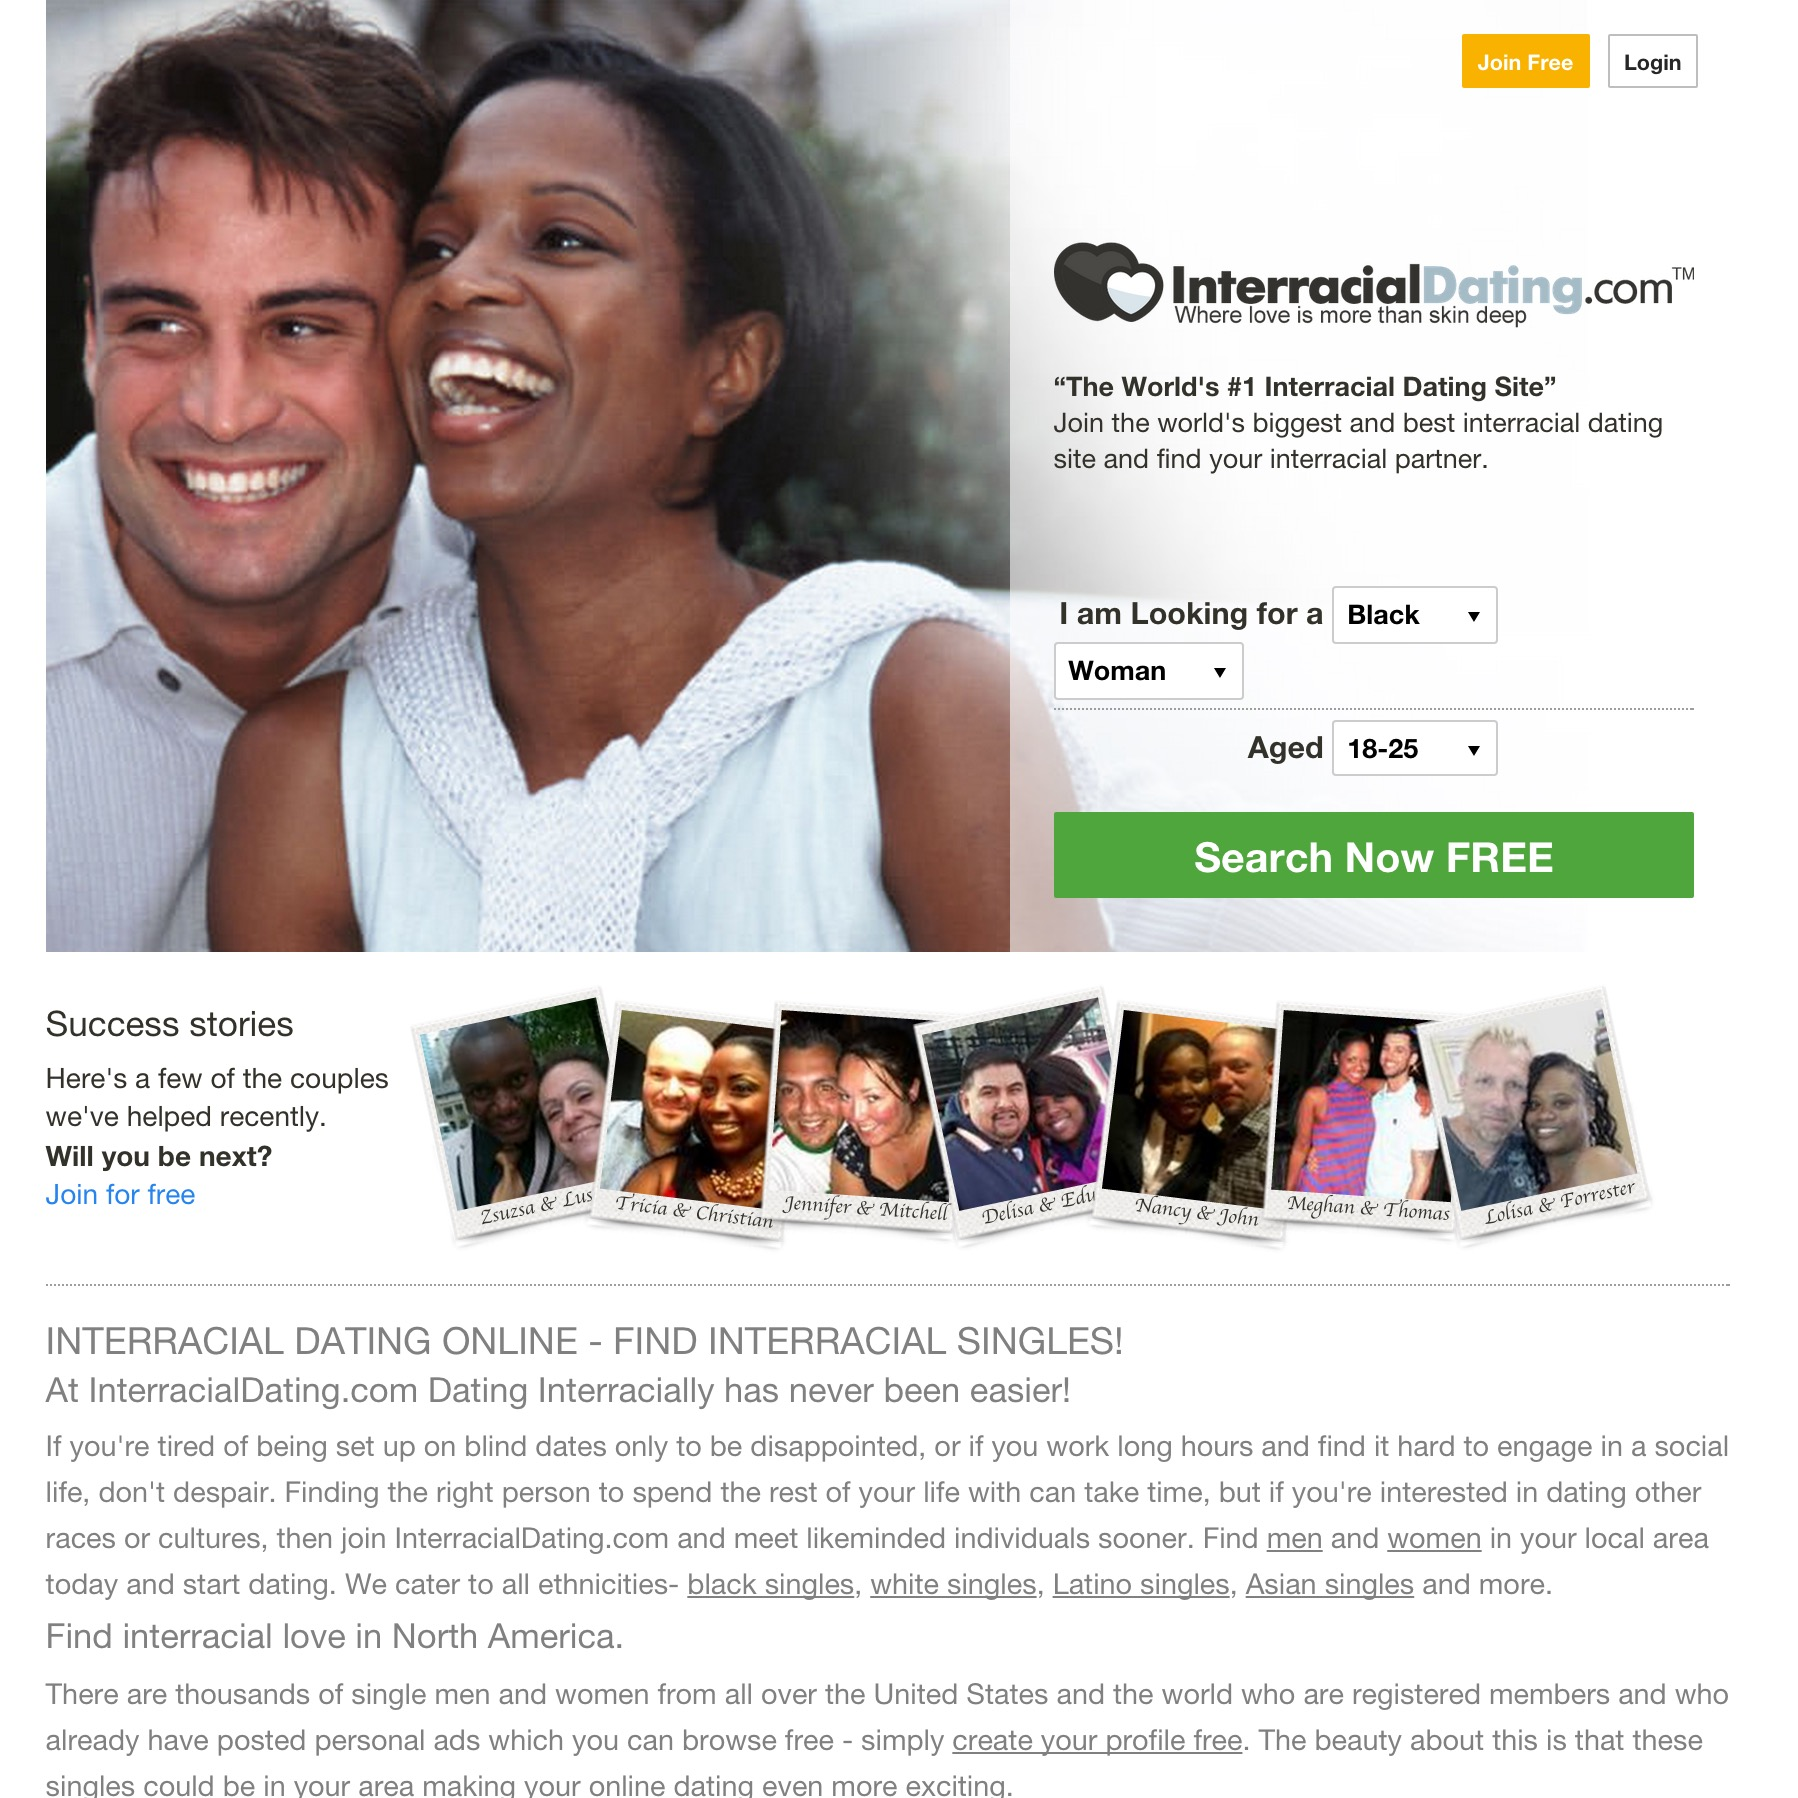 interracial online dating websites Online dating (or internet dating about one in ten respondents reported visiting these online dating websites including rising rates of interracial marriage.